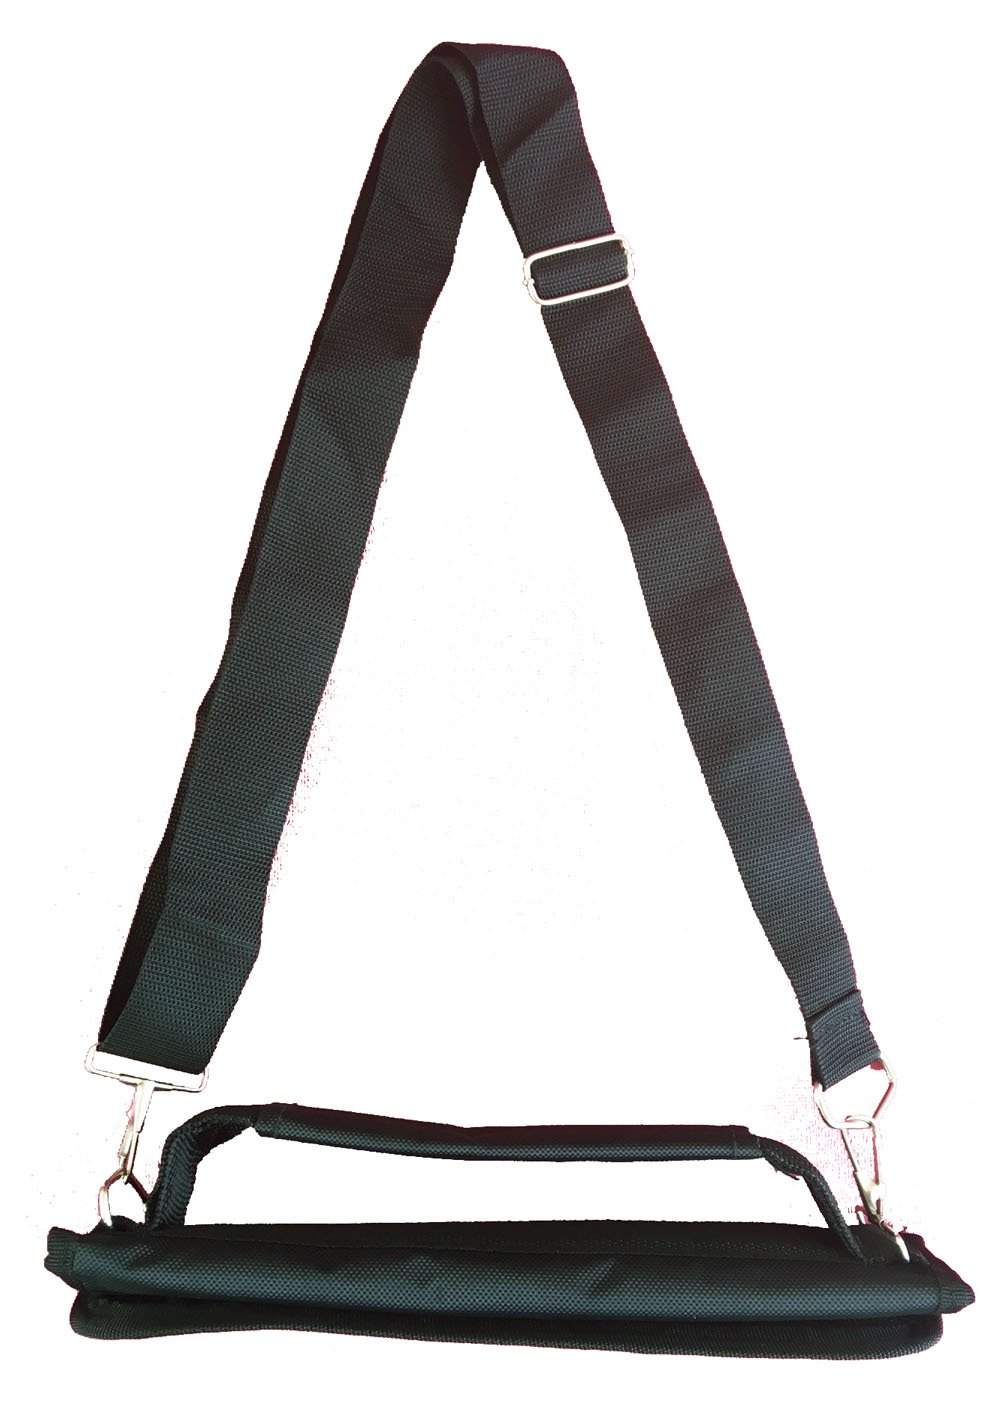 Axicore Golf Bag Driving Range Carrier, Light Sleeve Carry. Easy to Use Golf Carrier Bag